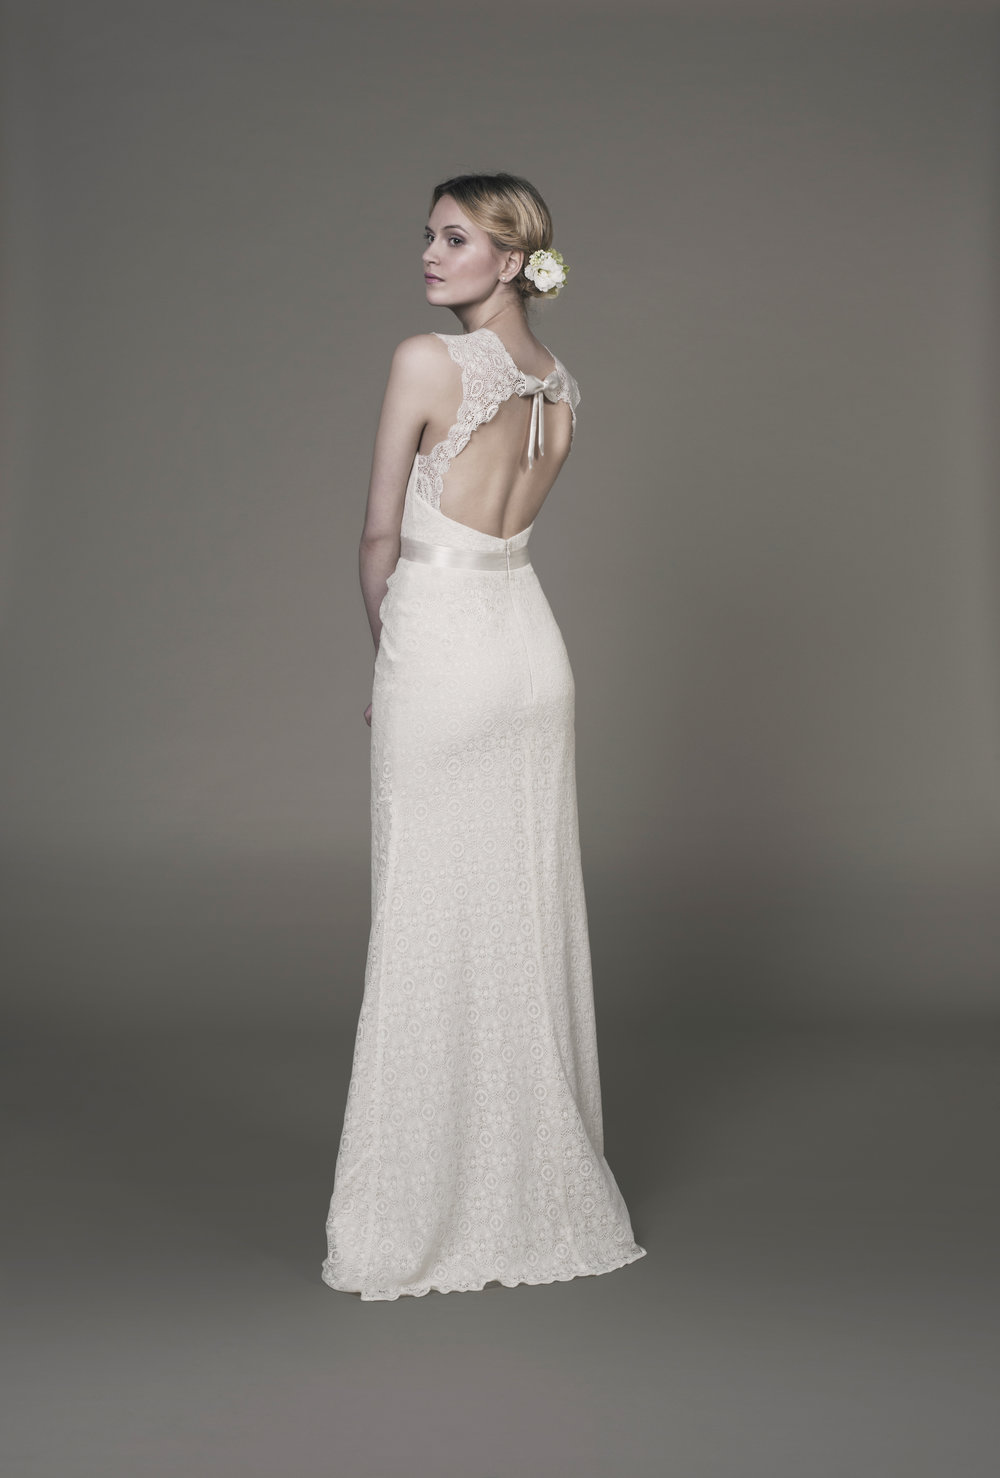 Bella gown 50% off - Stunning all over organic cotton lace wedding dress in natural cream colour. Fair trade made. Sample in perfect condition though lace straps may need taking in as have loosened from hanging. Vegan friendly wedding dress as outer and lining all organic cotton. £941.Size 12Measurements:Bust 36.5